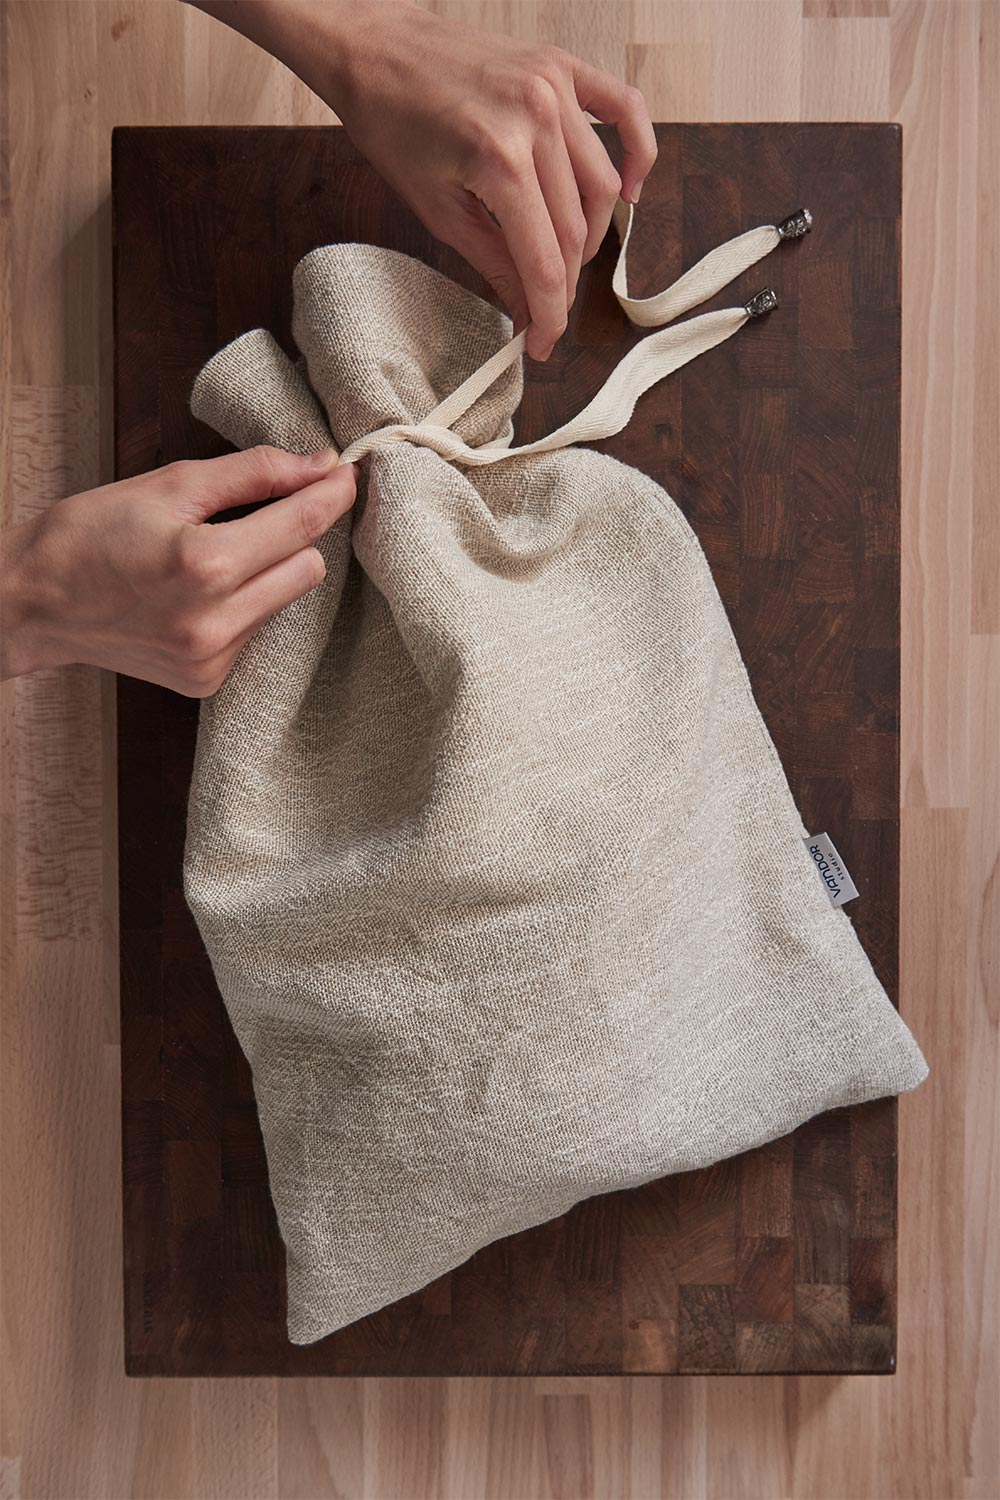 linen bread bag filled with bread on a cutting board